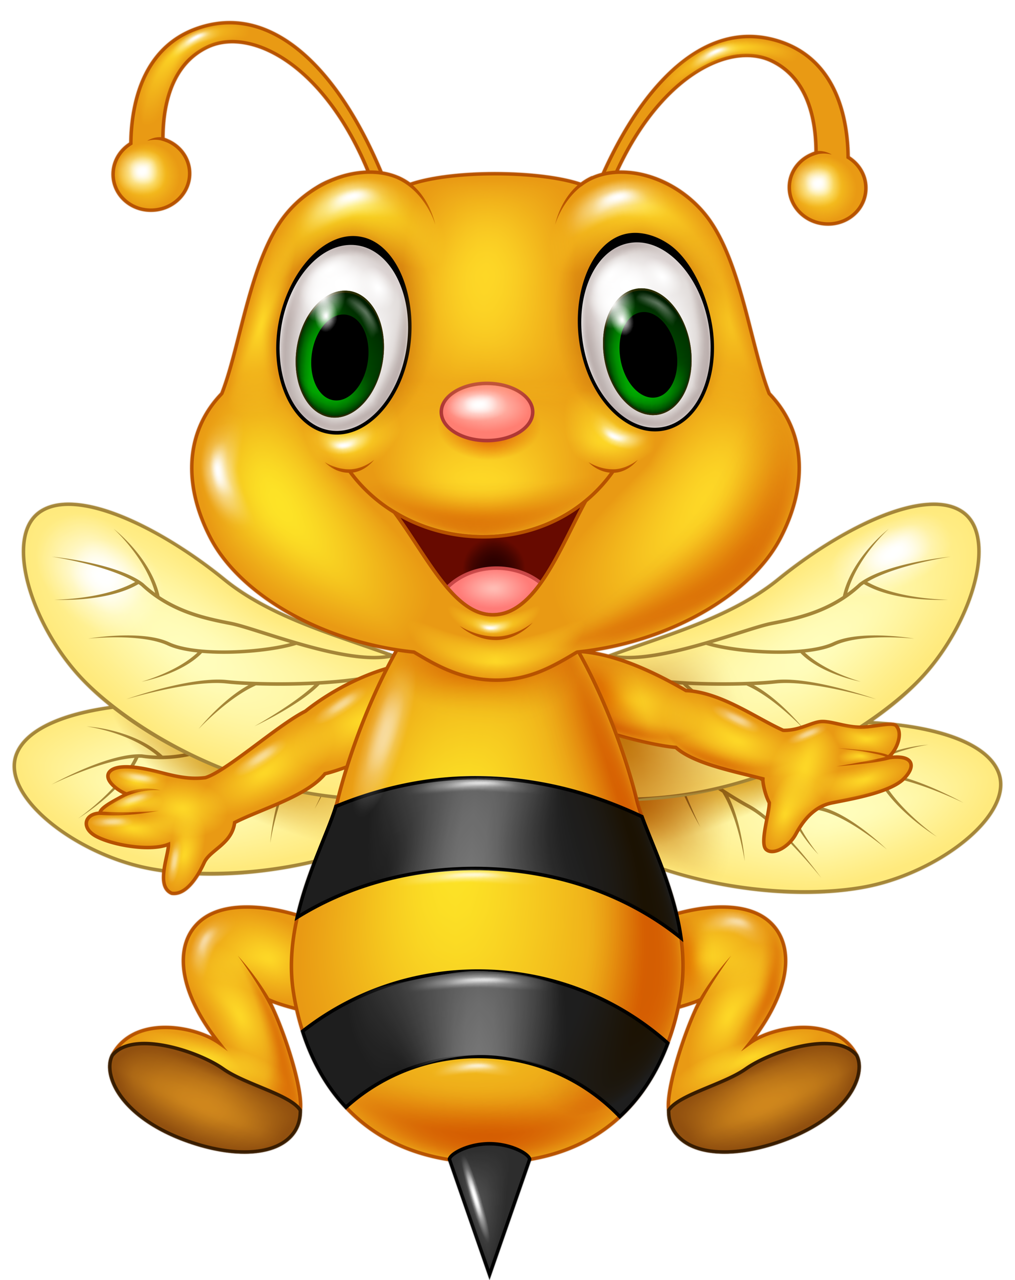 Bee on flower clipart png black and white library Funny cartoon animals vector (8) [преобразованный].png | Pinterest ... png black and white library